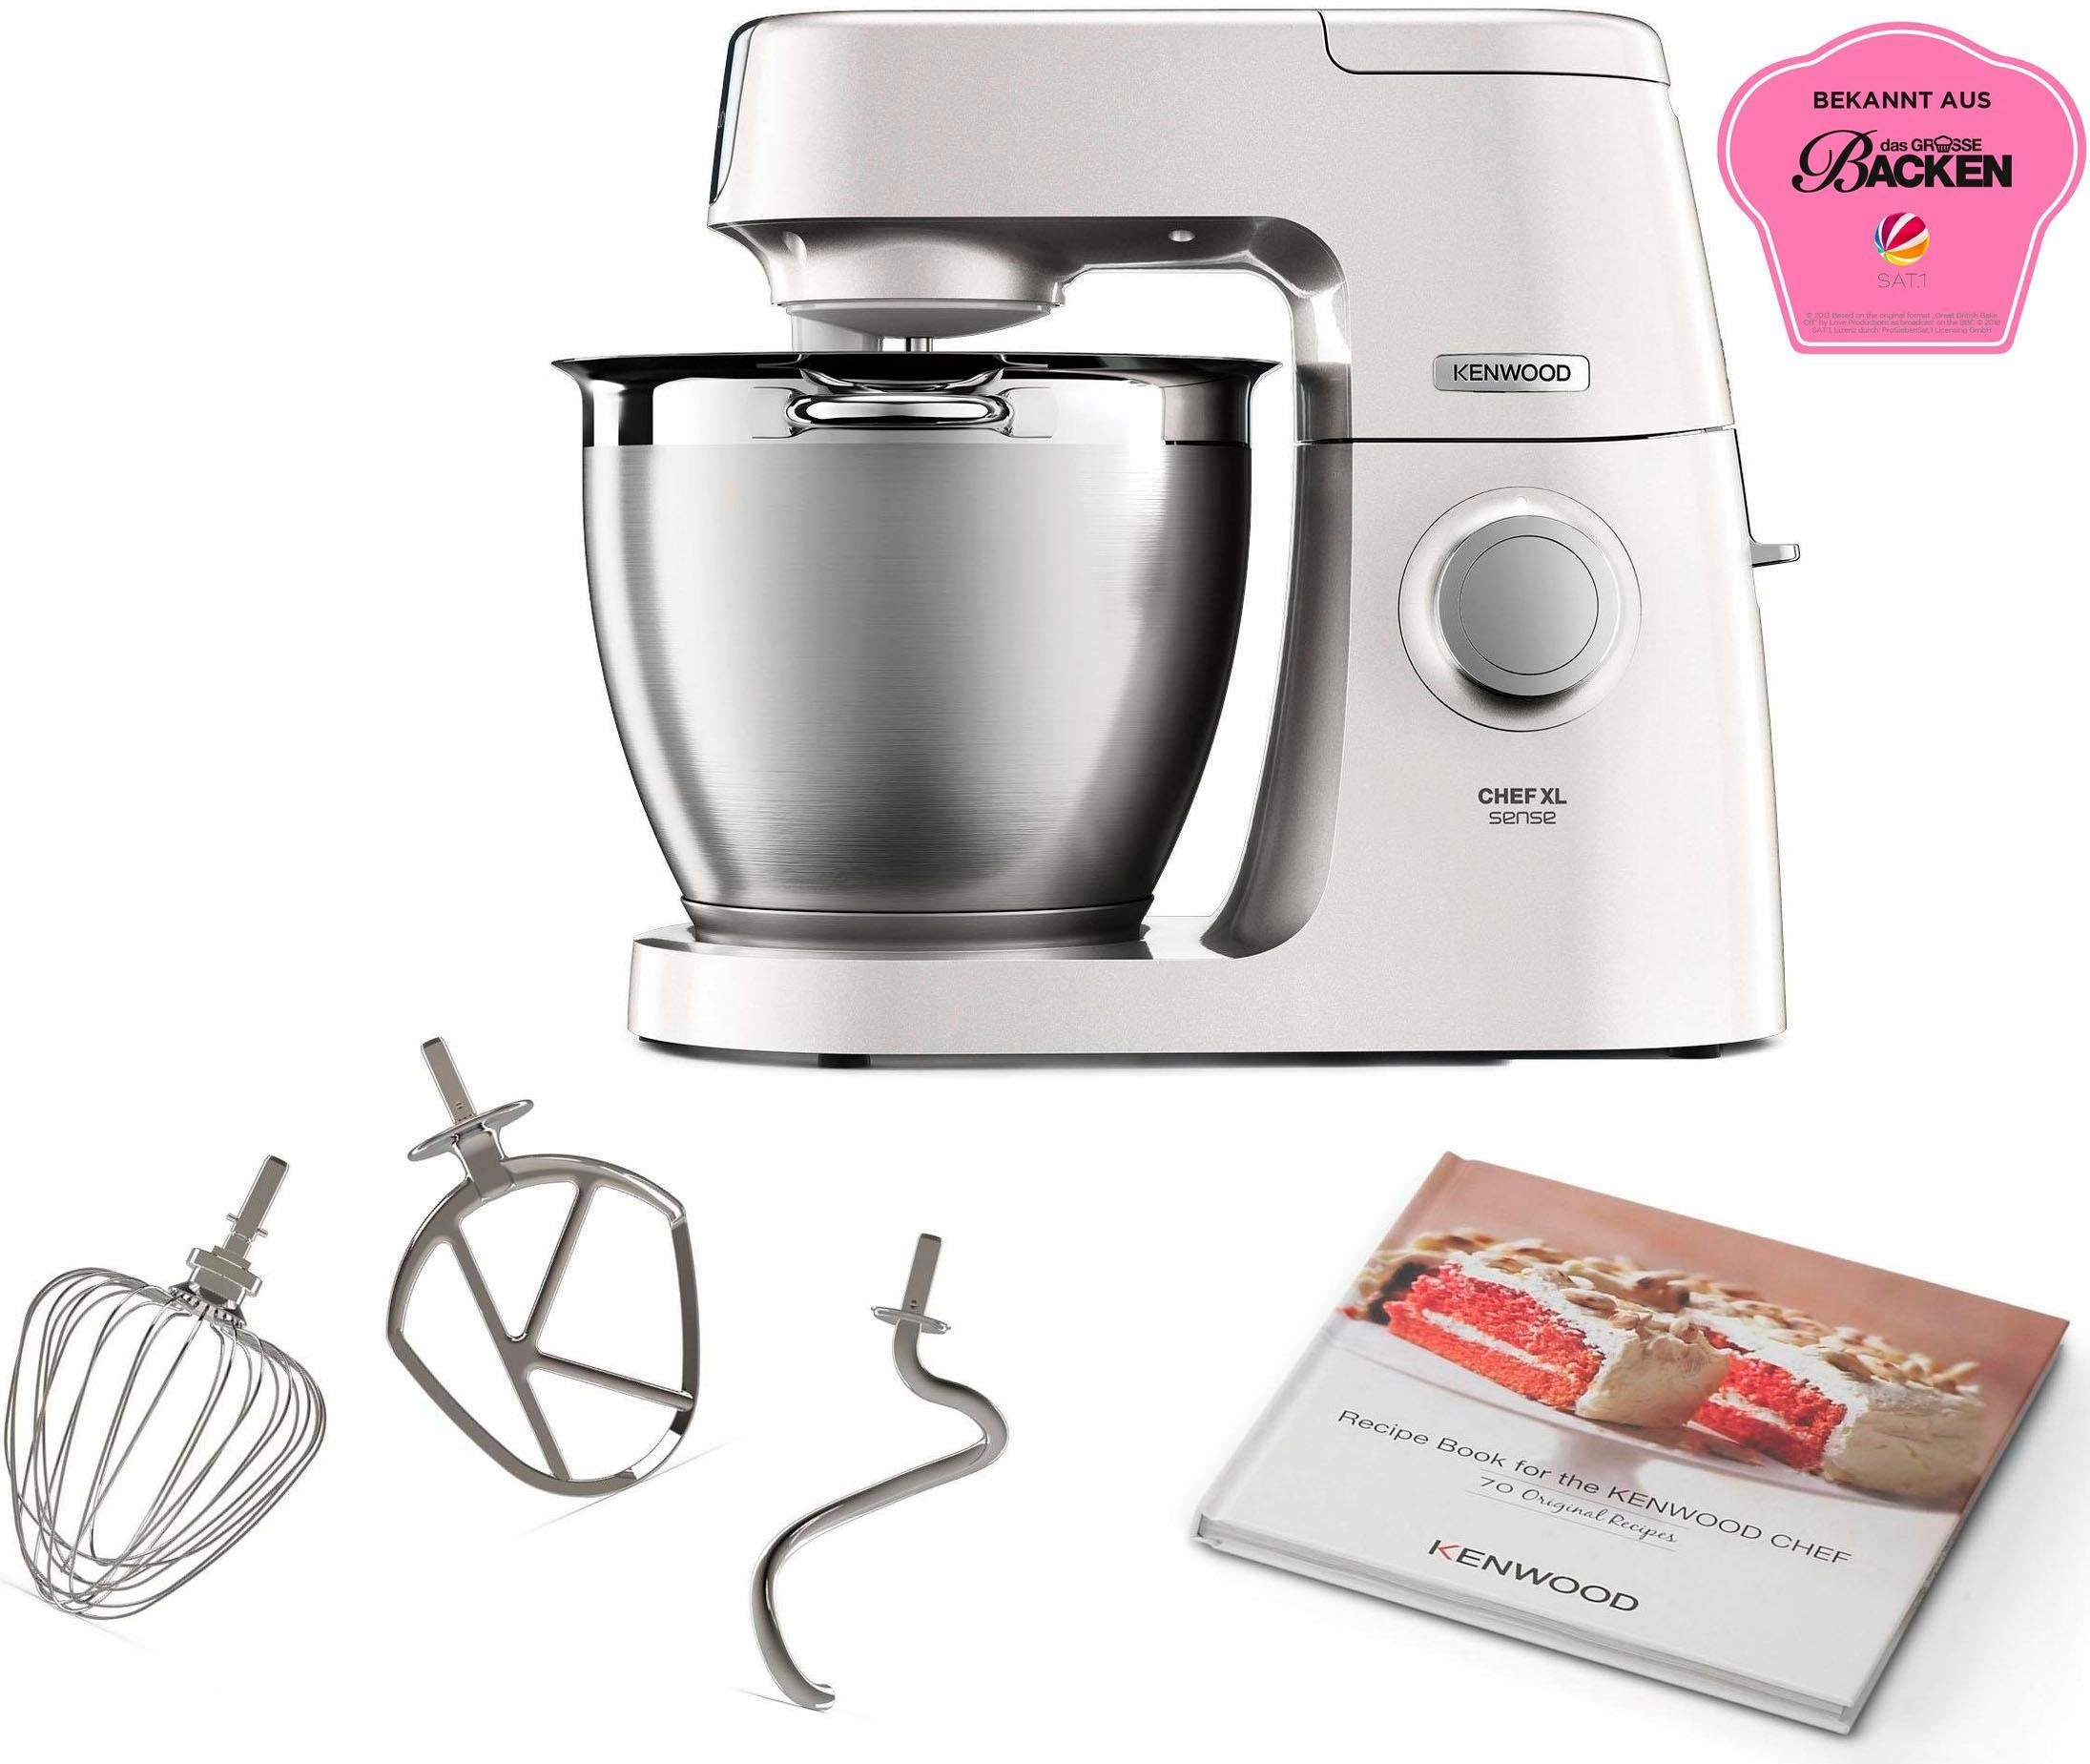 Kenwood Küchenmaschine Chef Kenwood Küchenmaschine Amazon